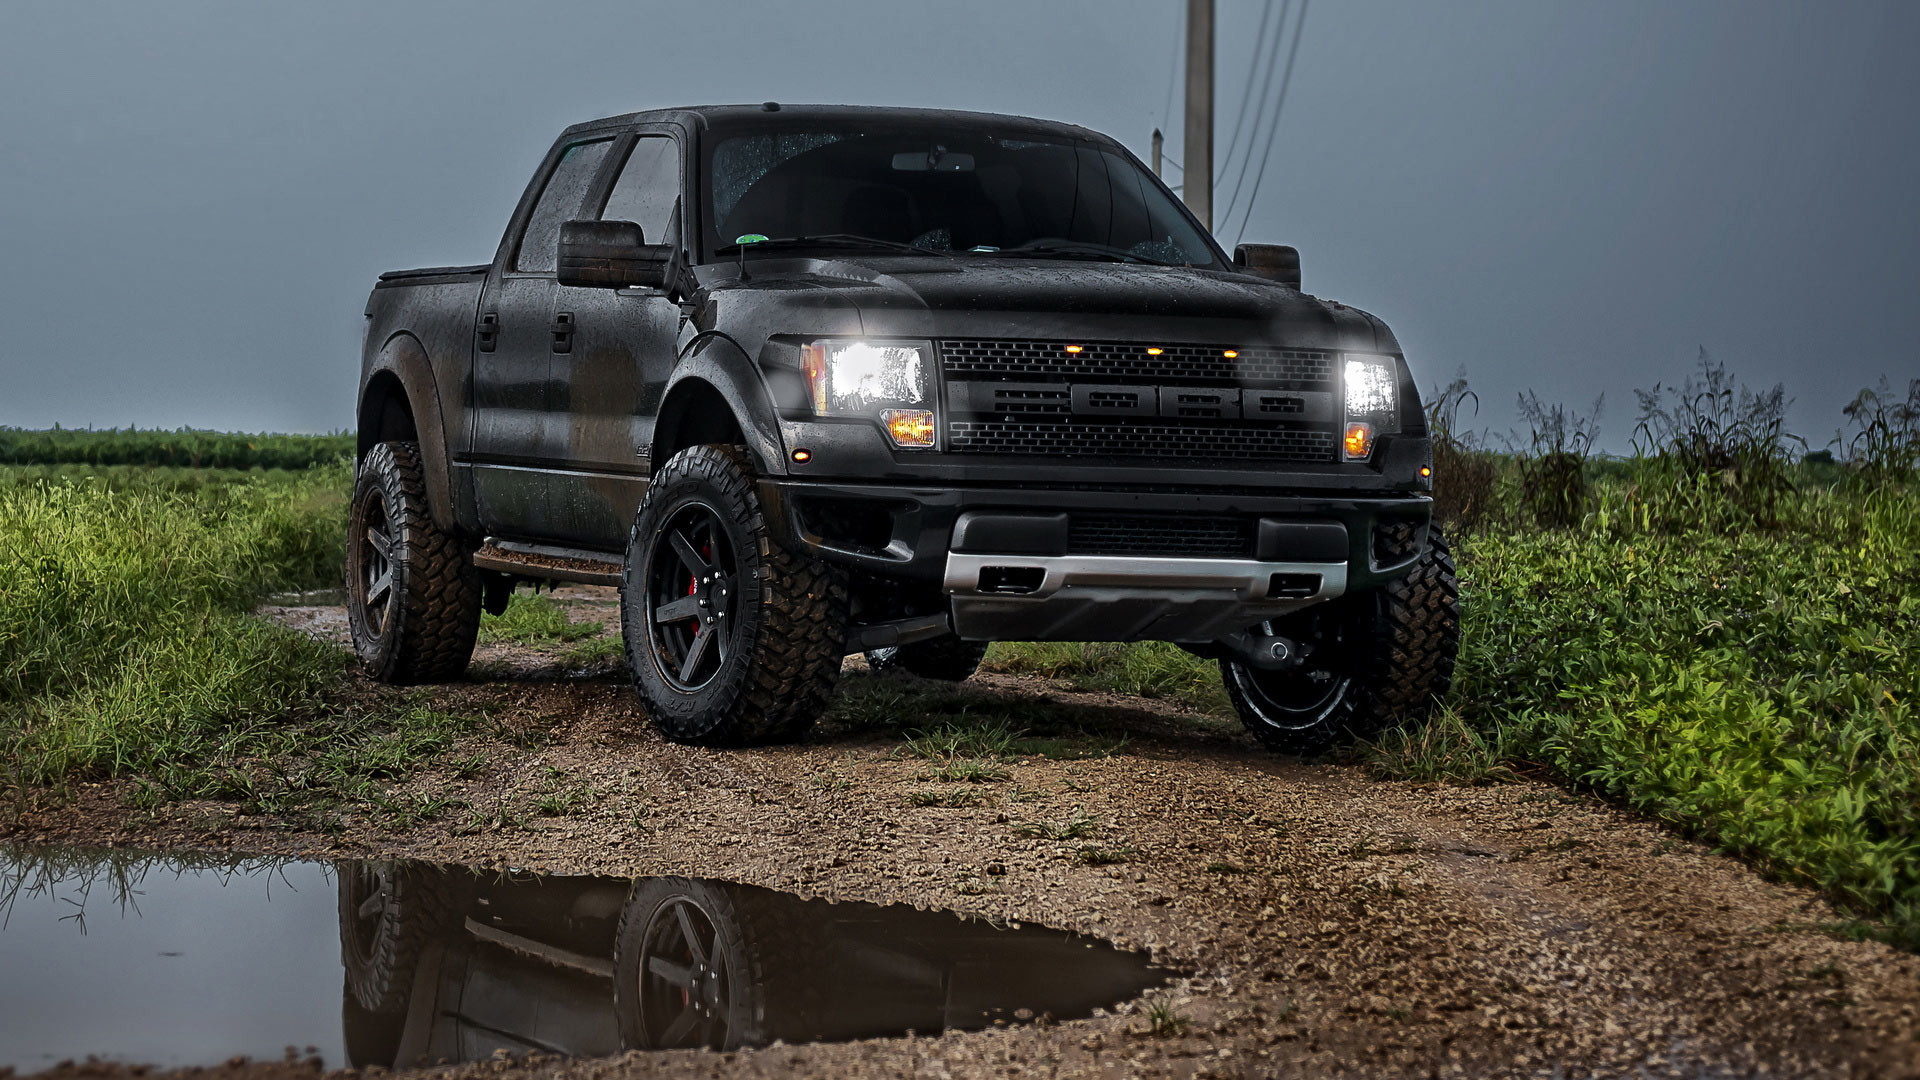 … Wallpapers hd Ford F-150 SVT Raptor Backgrounds